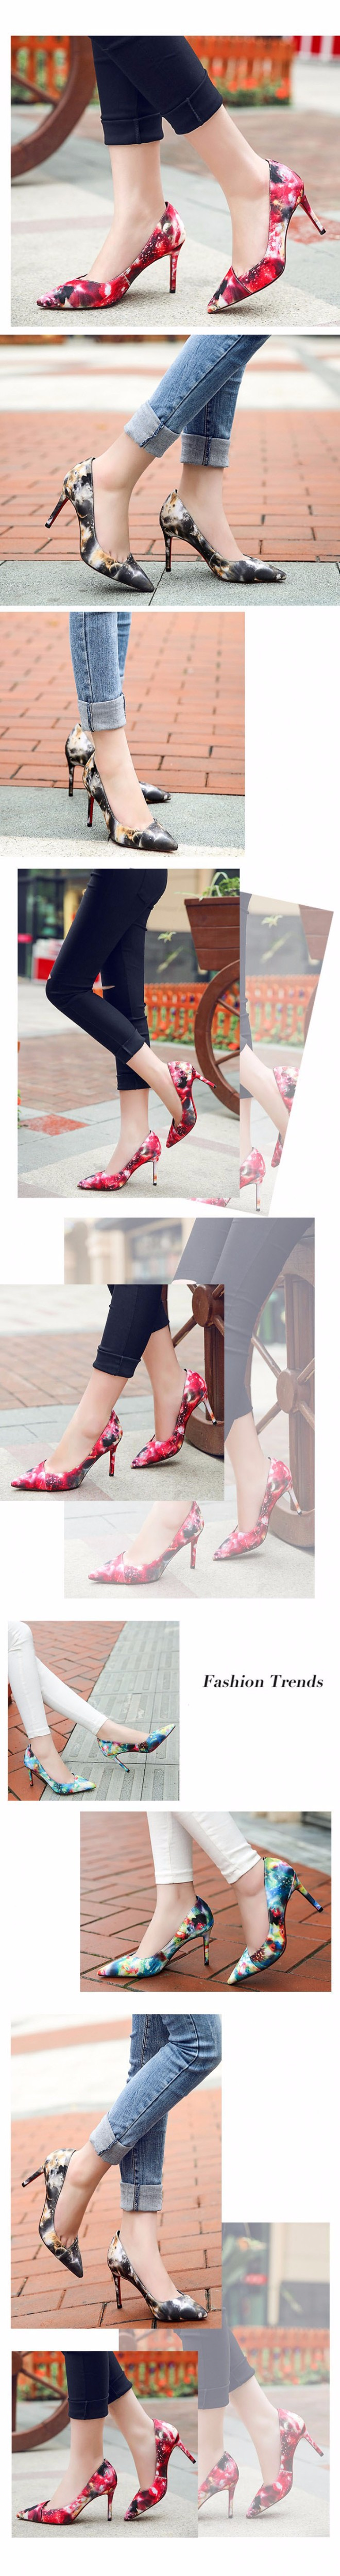 2016 New High-heeled Pumps Women Shoes High Heels Red Gray Blue Printing Shallow Mouth Thin Heel Pointed Toe Shoes For Women 3.0